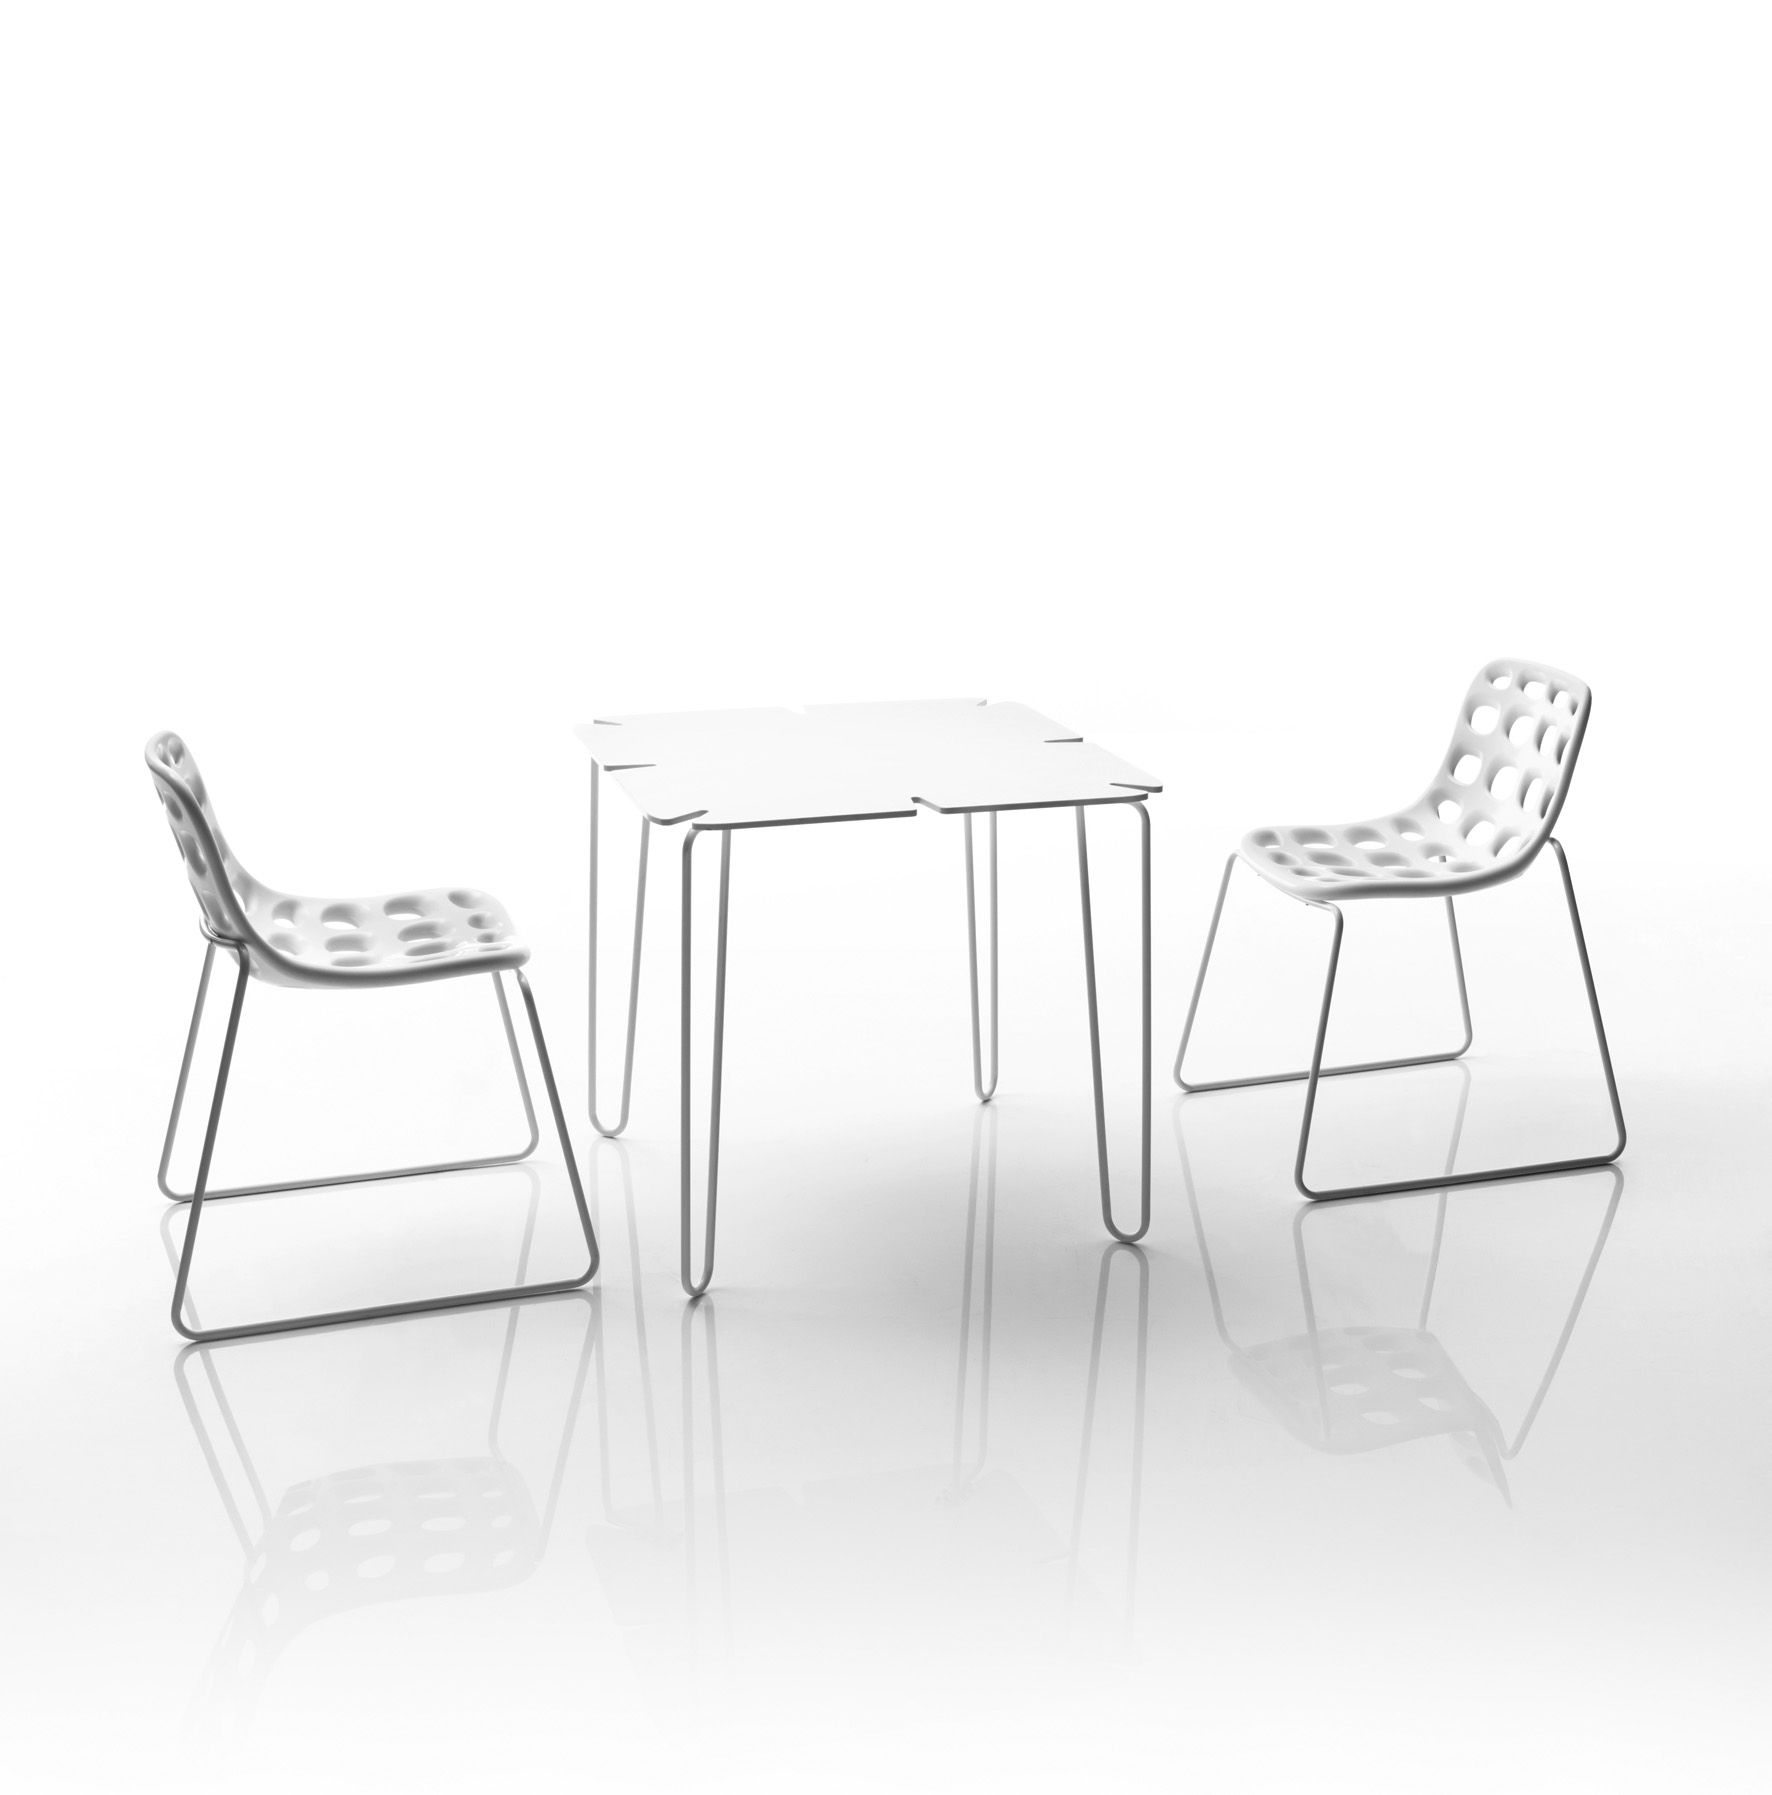 plastic chairs with steel legs birthing chair hospital chips stacking and metal white by myyour